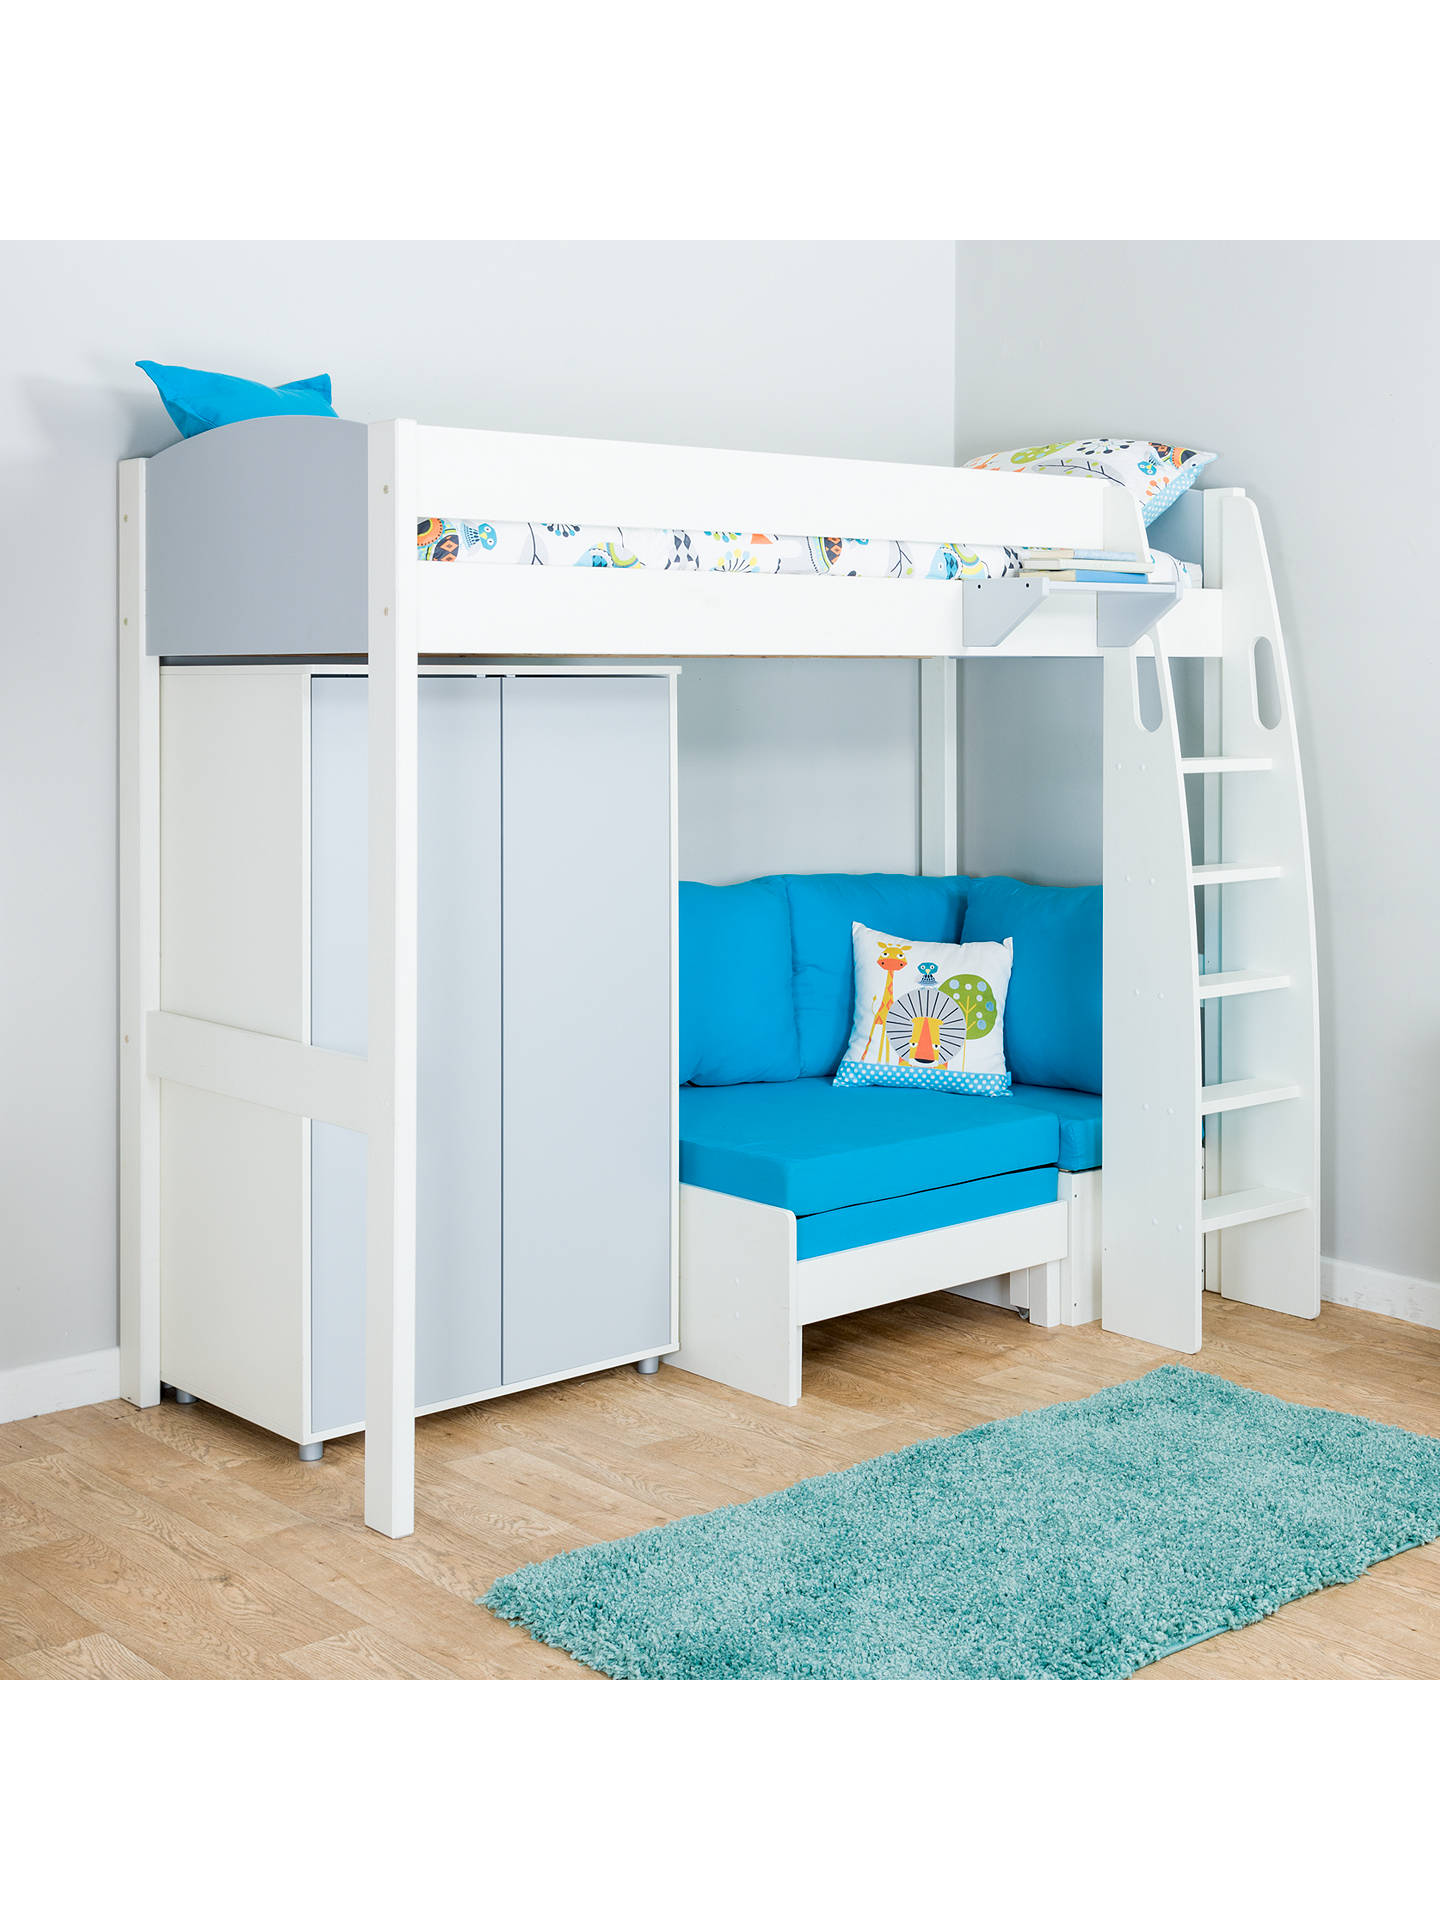 BuyStompa Uno S Plus High-Sleeper Bed with Wardrobe and Chair Bed, Grey/Aqua Online at johnlewis.com